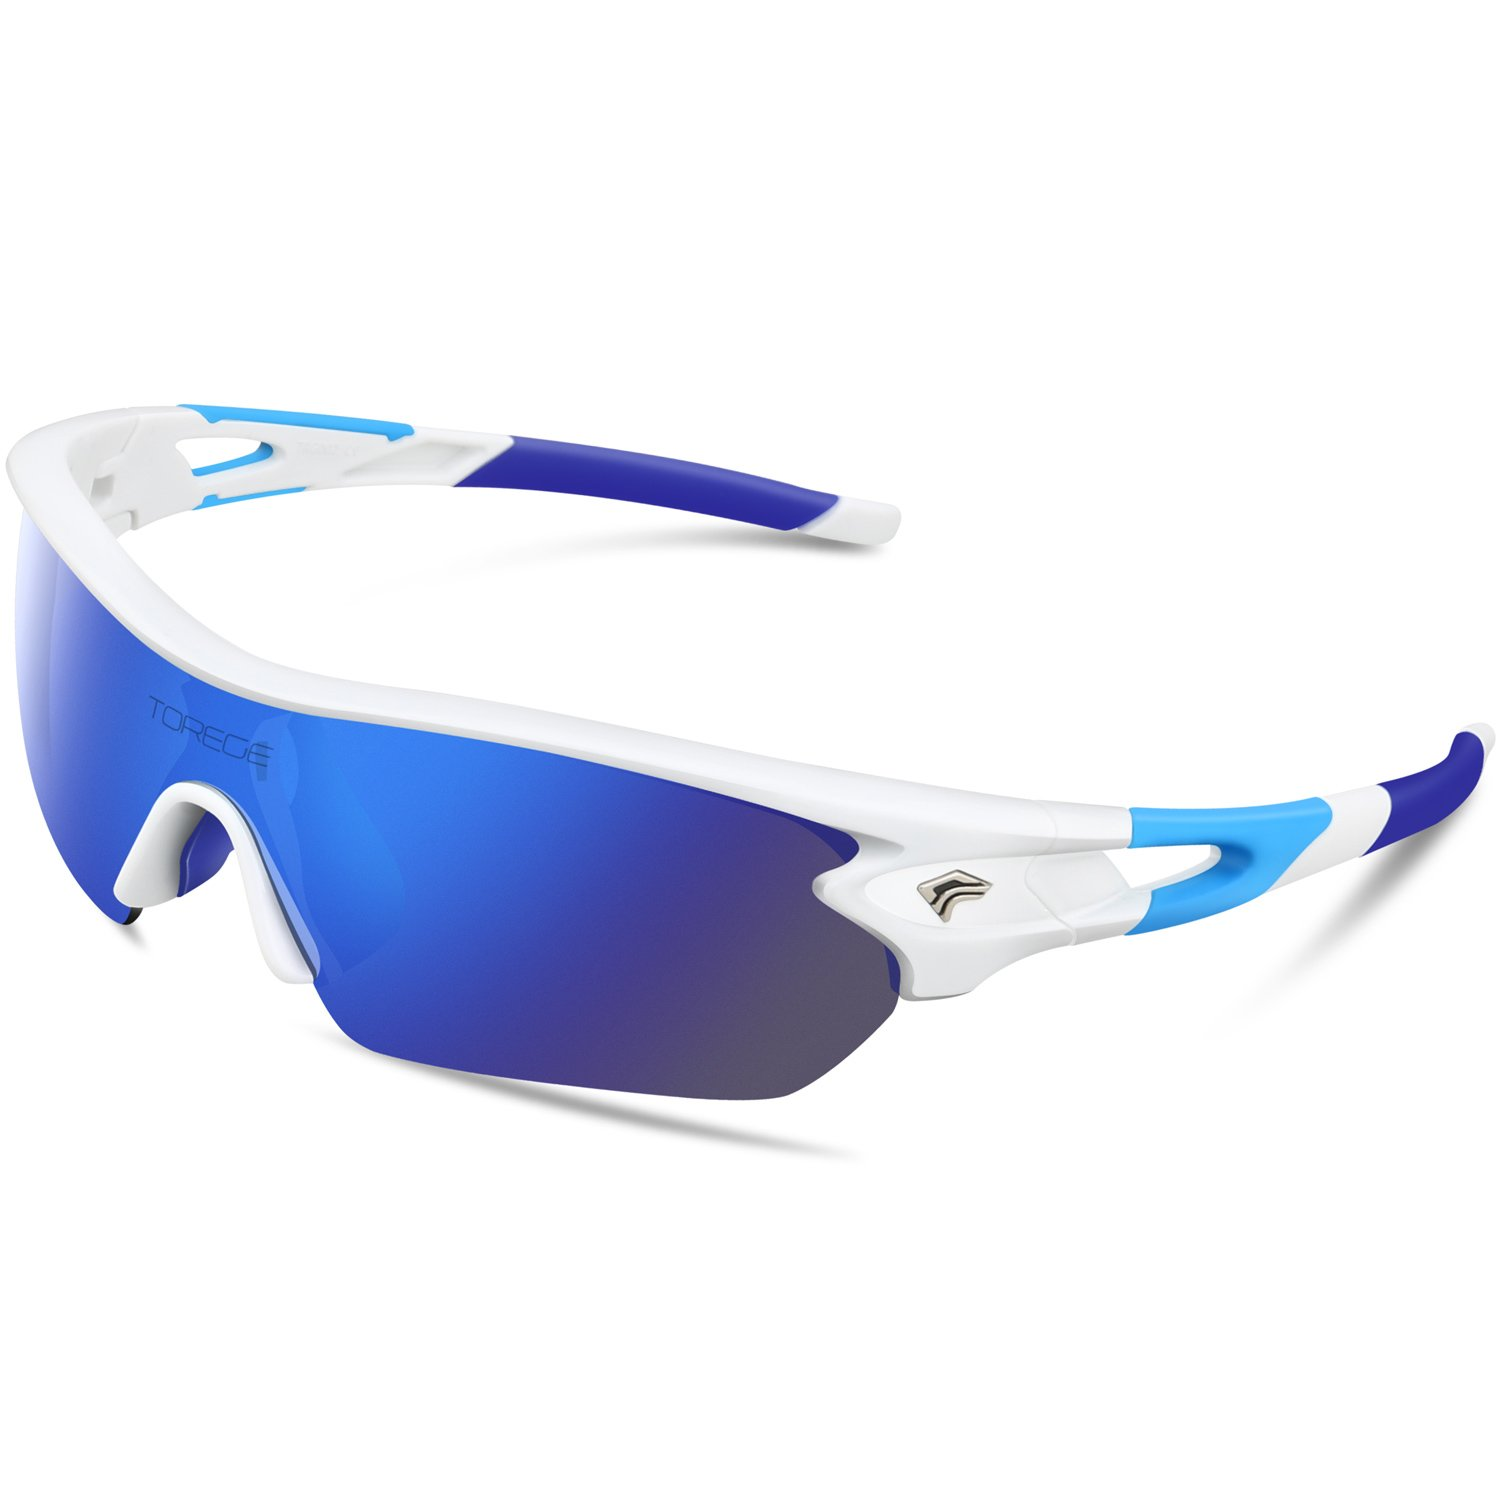 TOREGE Polarized Sports Sunglasses with 5 Interchangeable Lenes for Men Women Cycling Running Driving Fishing Golf Baseball Glasses TR002 (White&Blue) by TOREGE